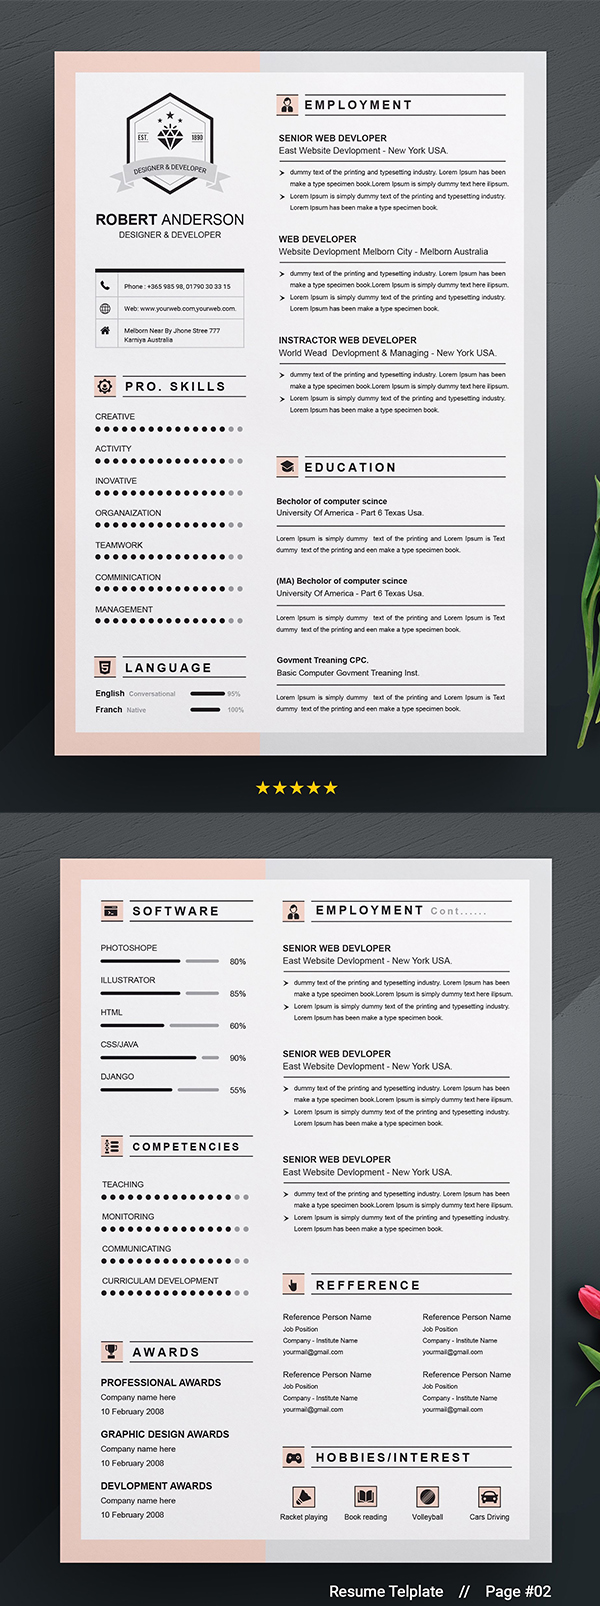 Resume Template | Apple Pages